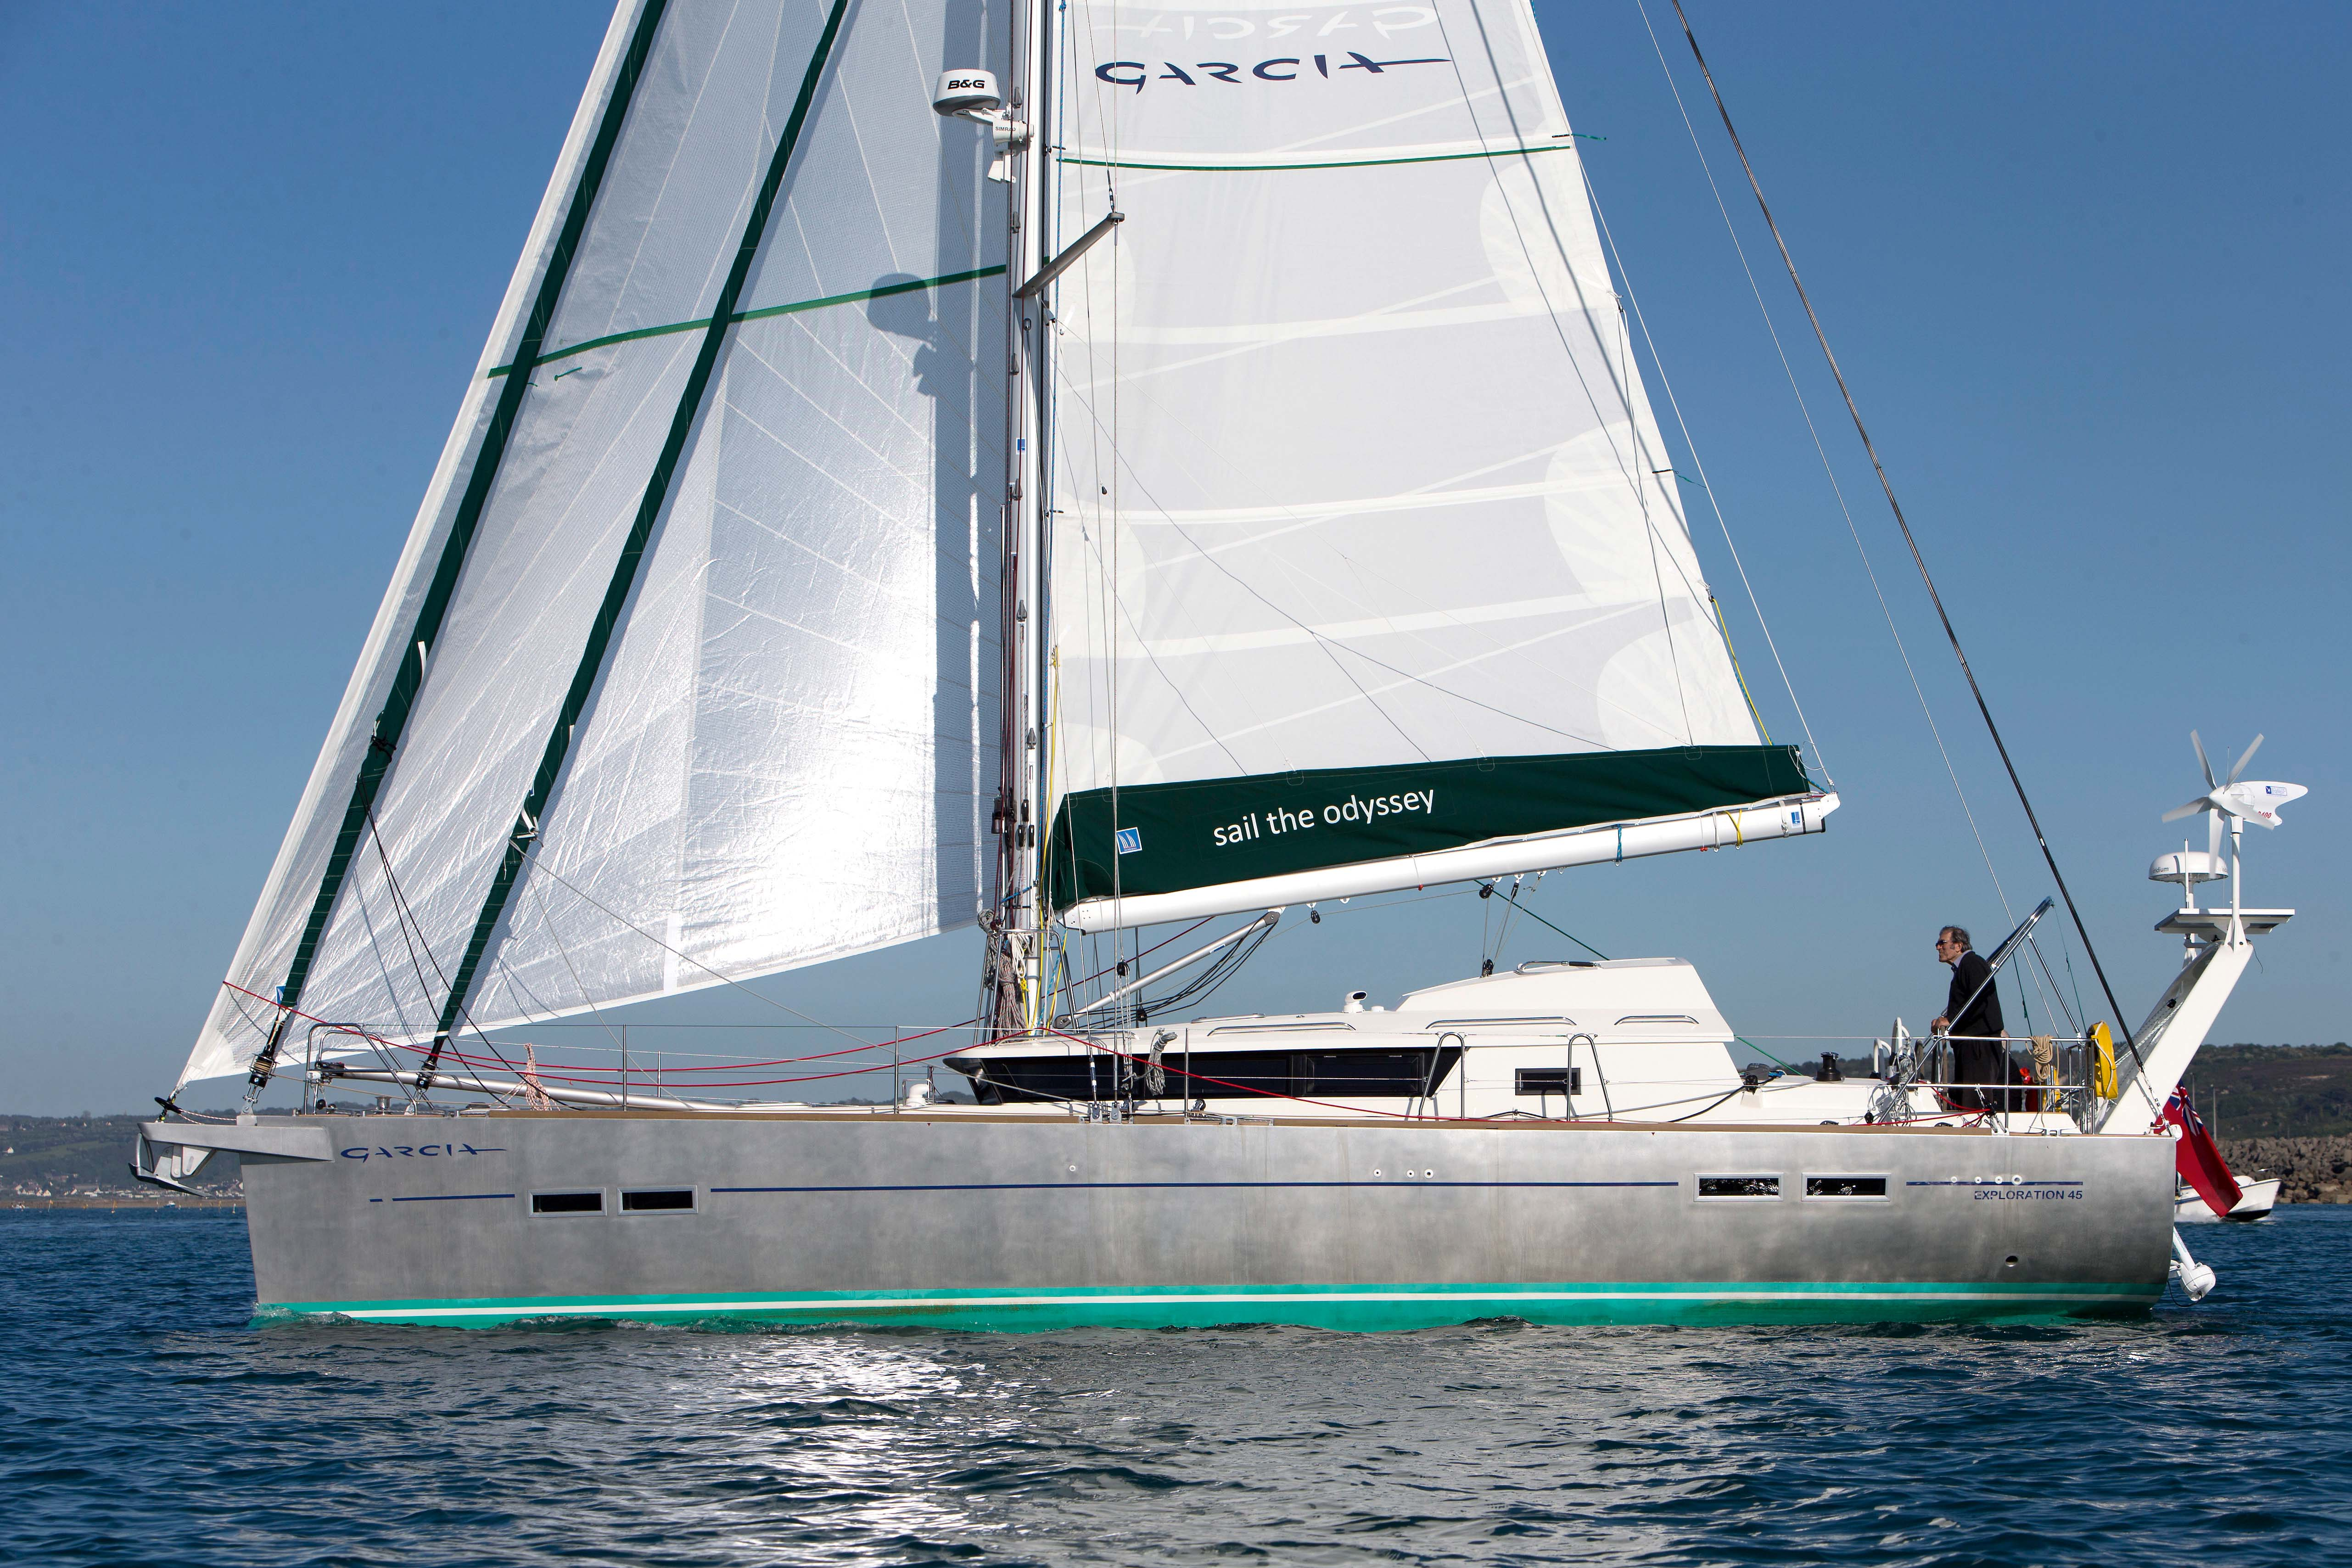 jimmy cornell reveals his new aventura u2013 yachting world